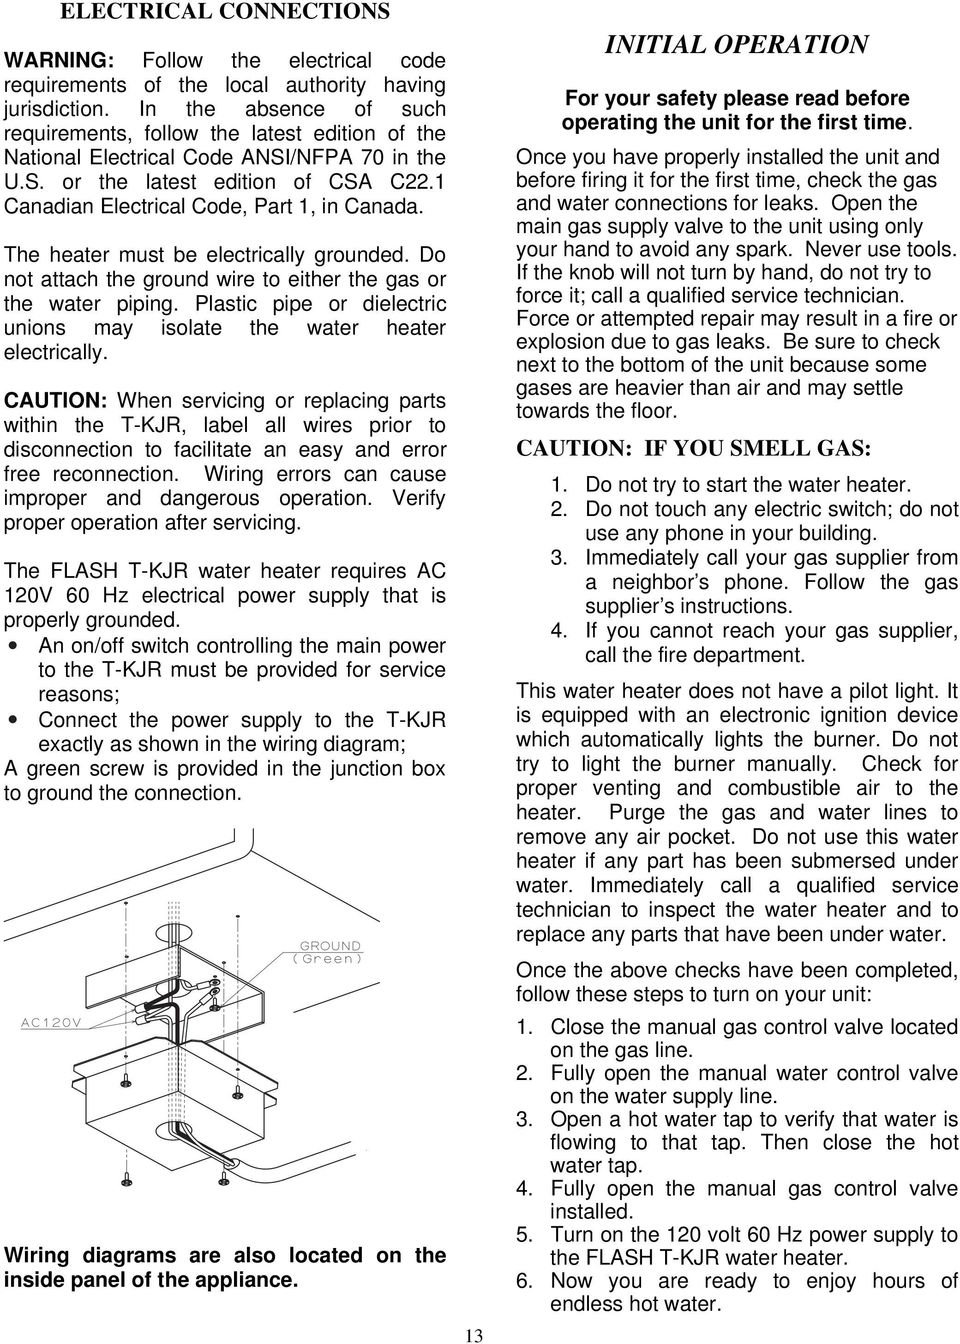 T Kjr Instantaneous Water Heater Installation Manual And Owner S Ansi Wiring Diagram The Must Be Electrically Grounded Do Not Attach Ground Wire To Either